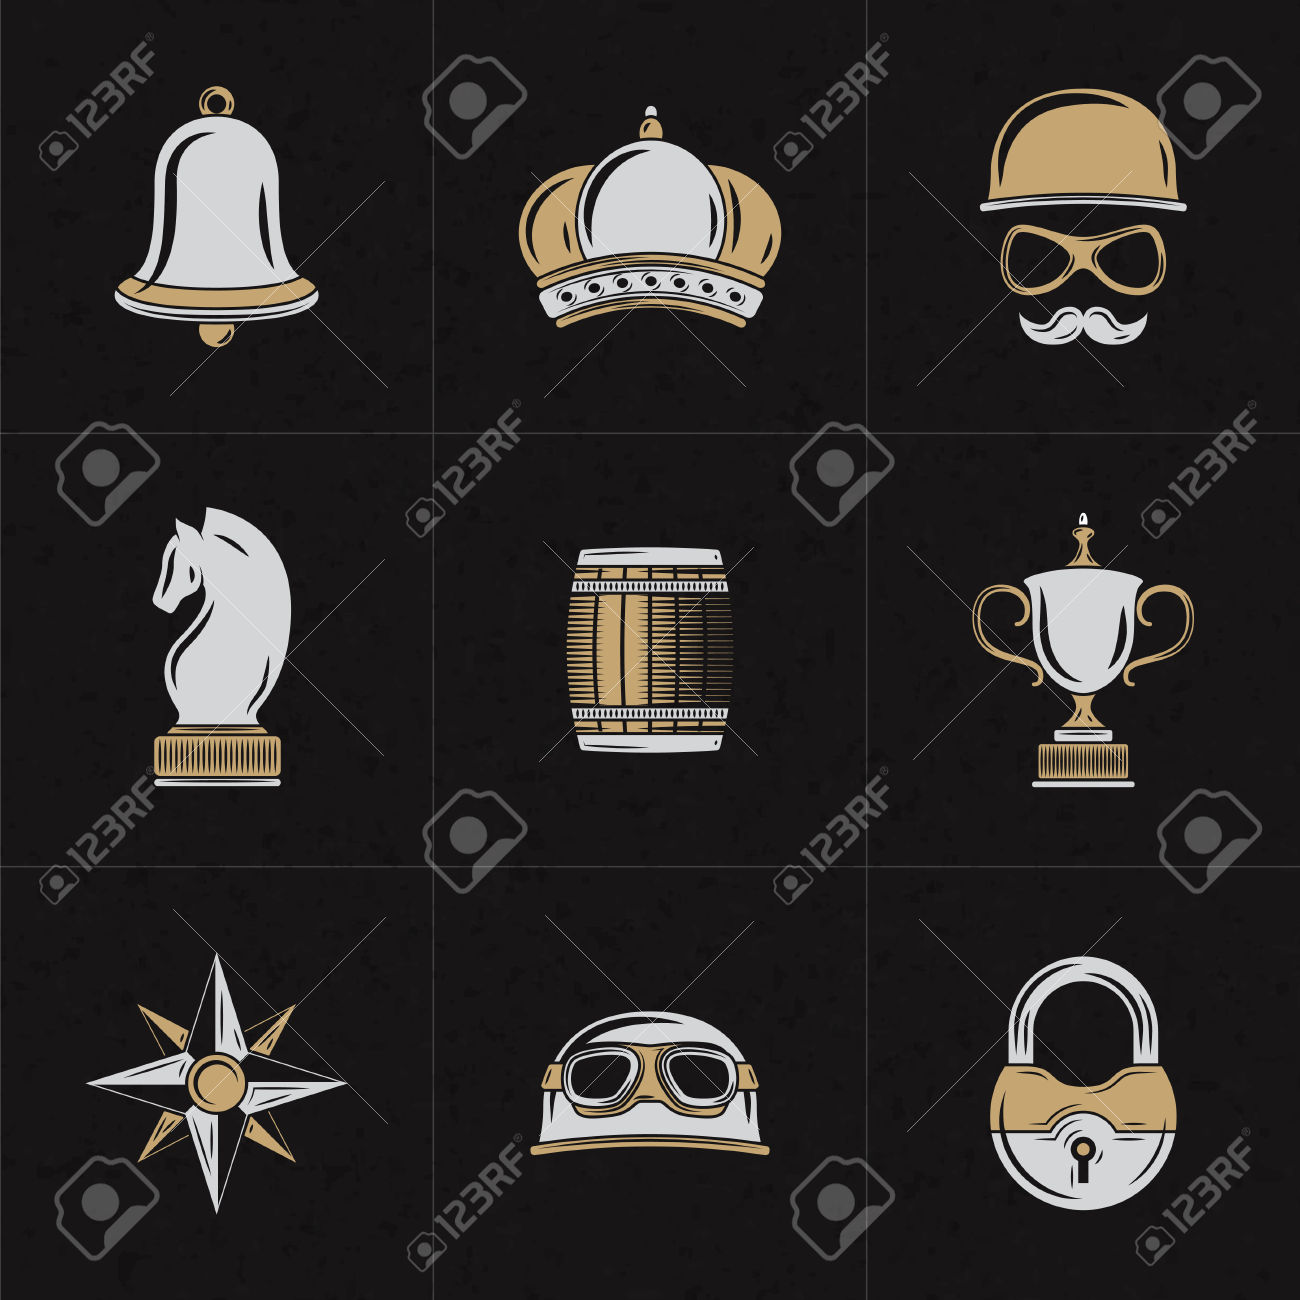 11,450 Knight Icon Stock Vector Illustration And Royalty Free.